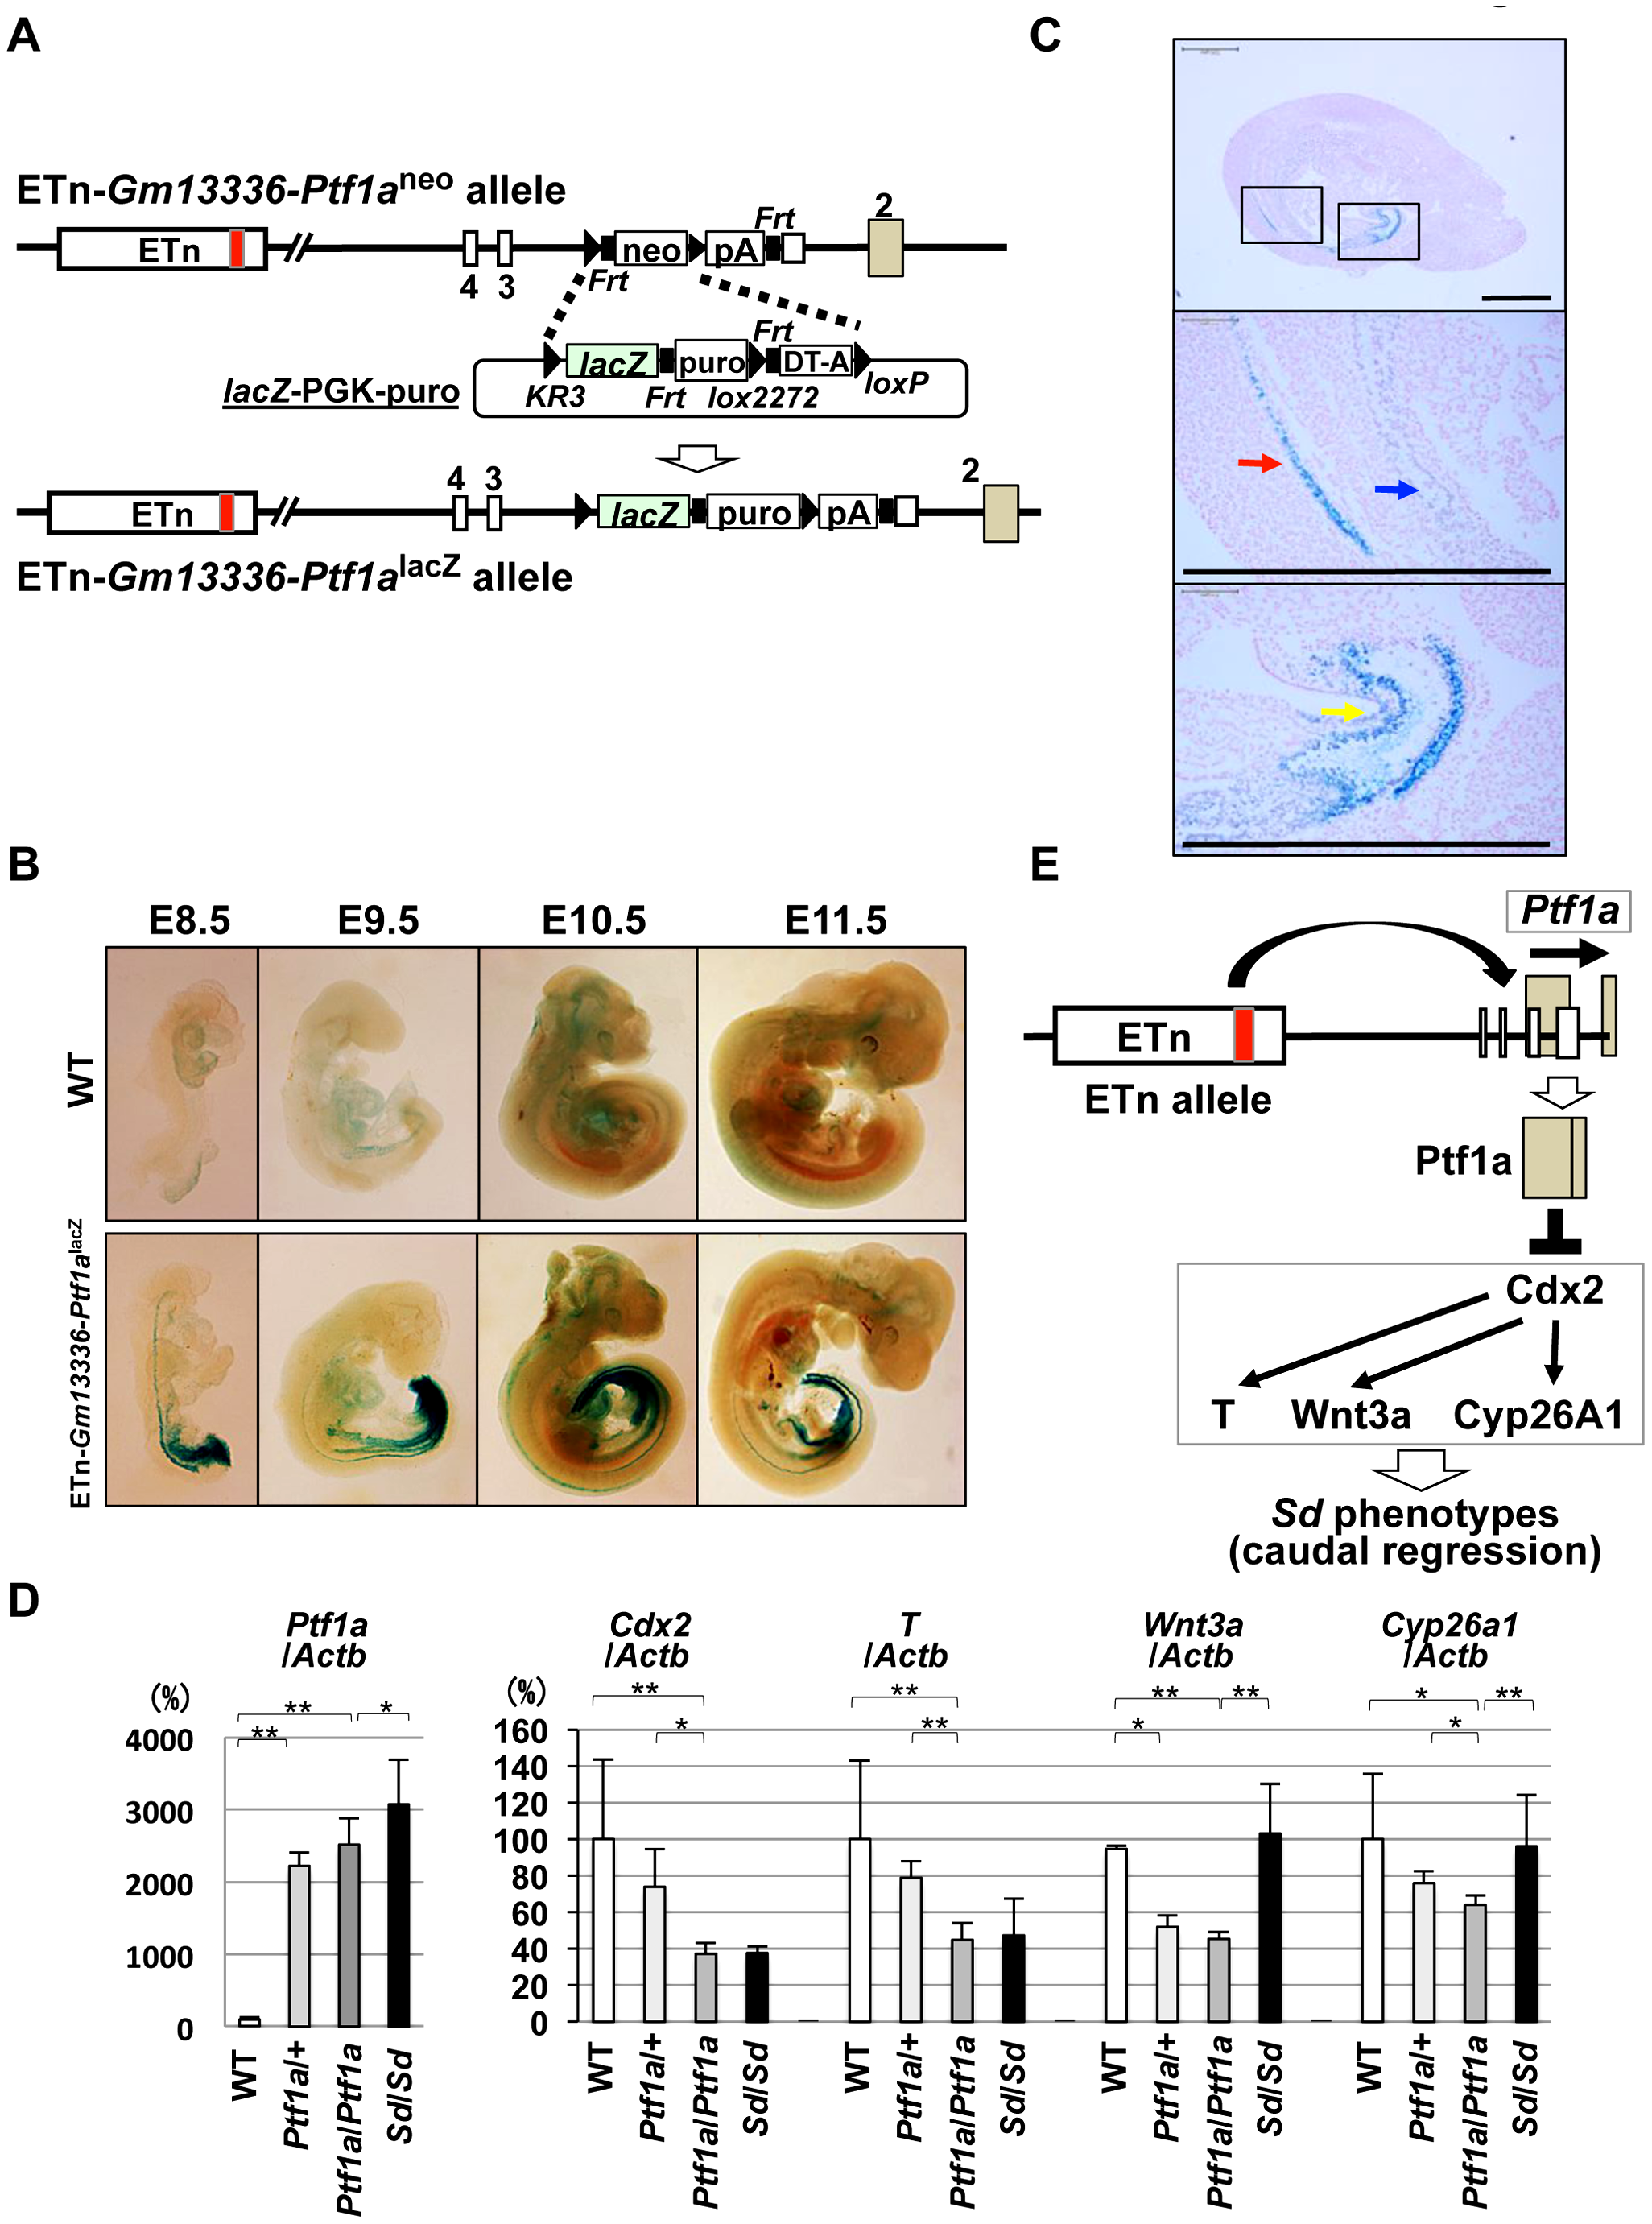 Ectopic expression of <i>Ptf1a</i> and downregulation of <i>Cdx2</i> and its downstream targets.